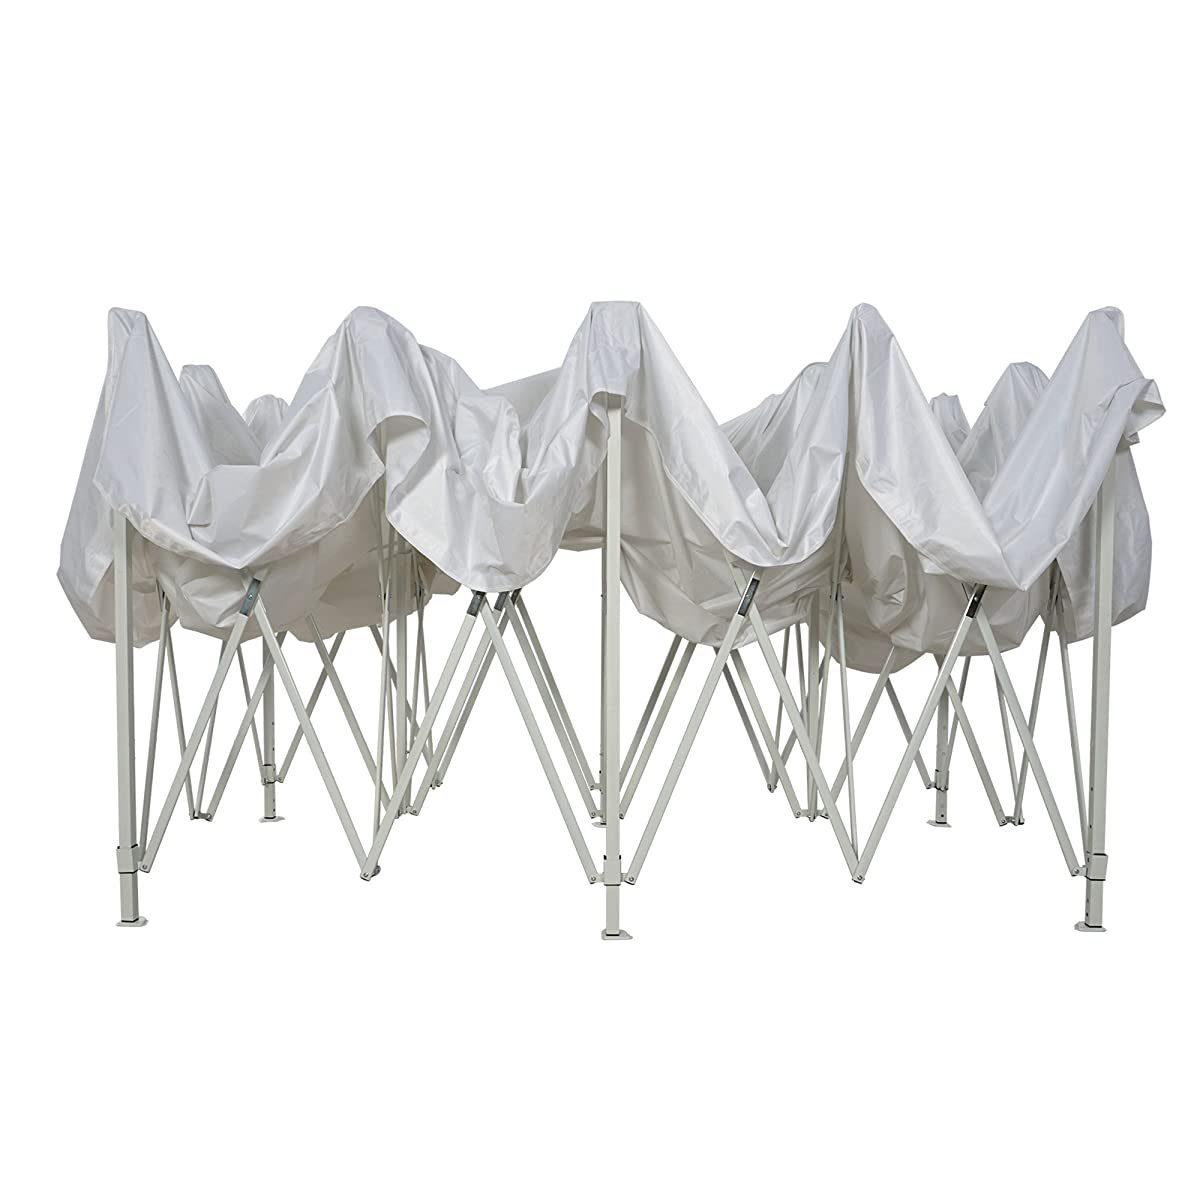 Patio Commercial Canopy White Steel Frame Heavy Duty Pop Up Party Festival Instant Shelter Canopy (10 x 20 Feet, White)